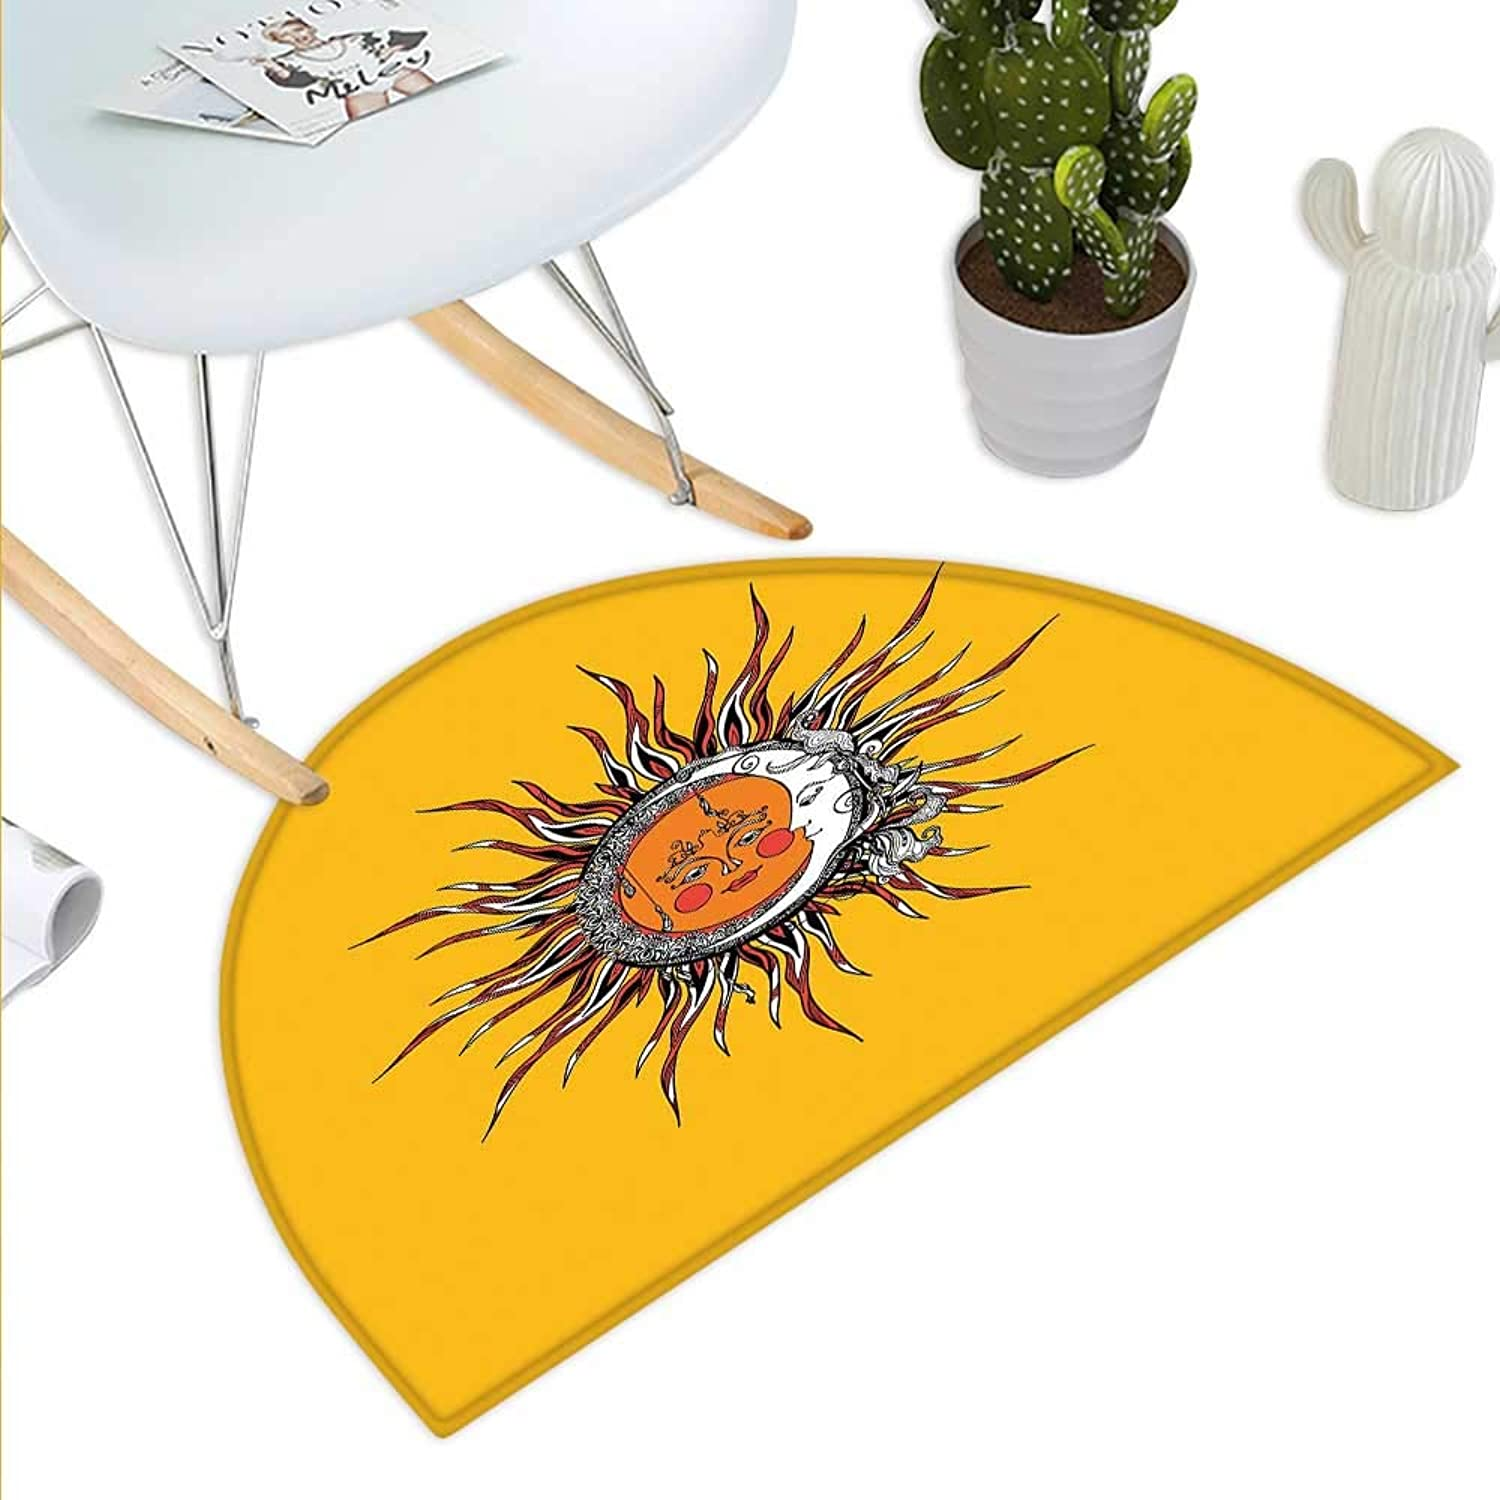 Sun Semicircle Doormat Abstract Celestial Patterns with Anthropomorphic Faces Leaves and Swirled Stripes Sky Halfmoon doormats H 43.3  xD 64.9  Multicolor